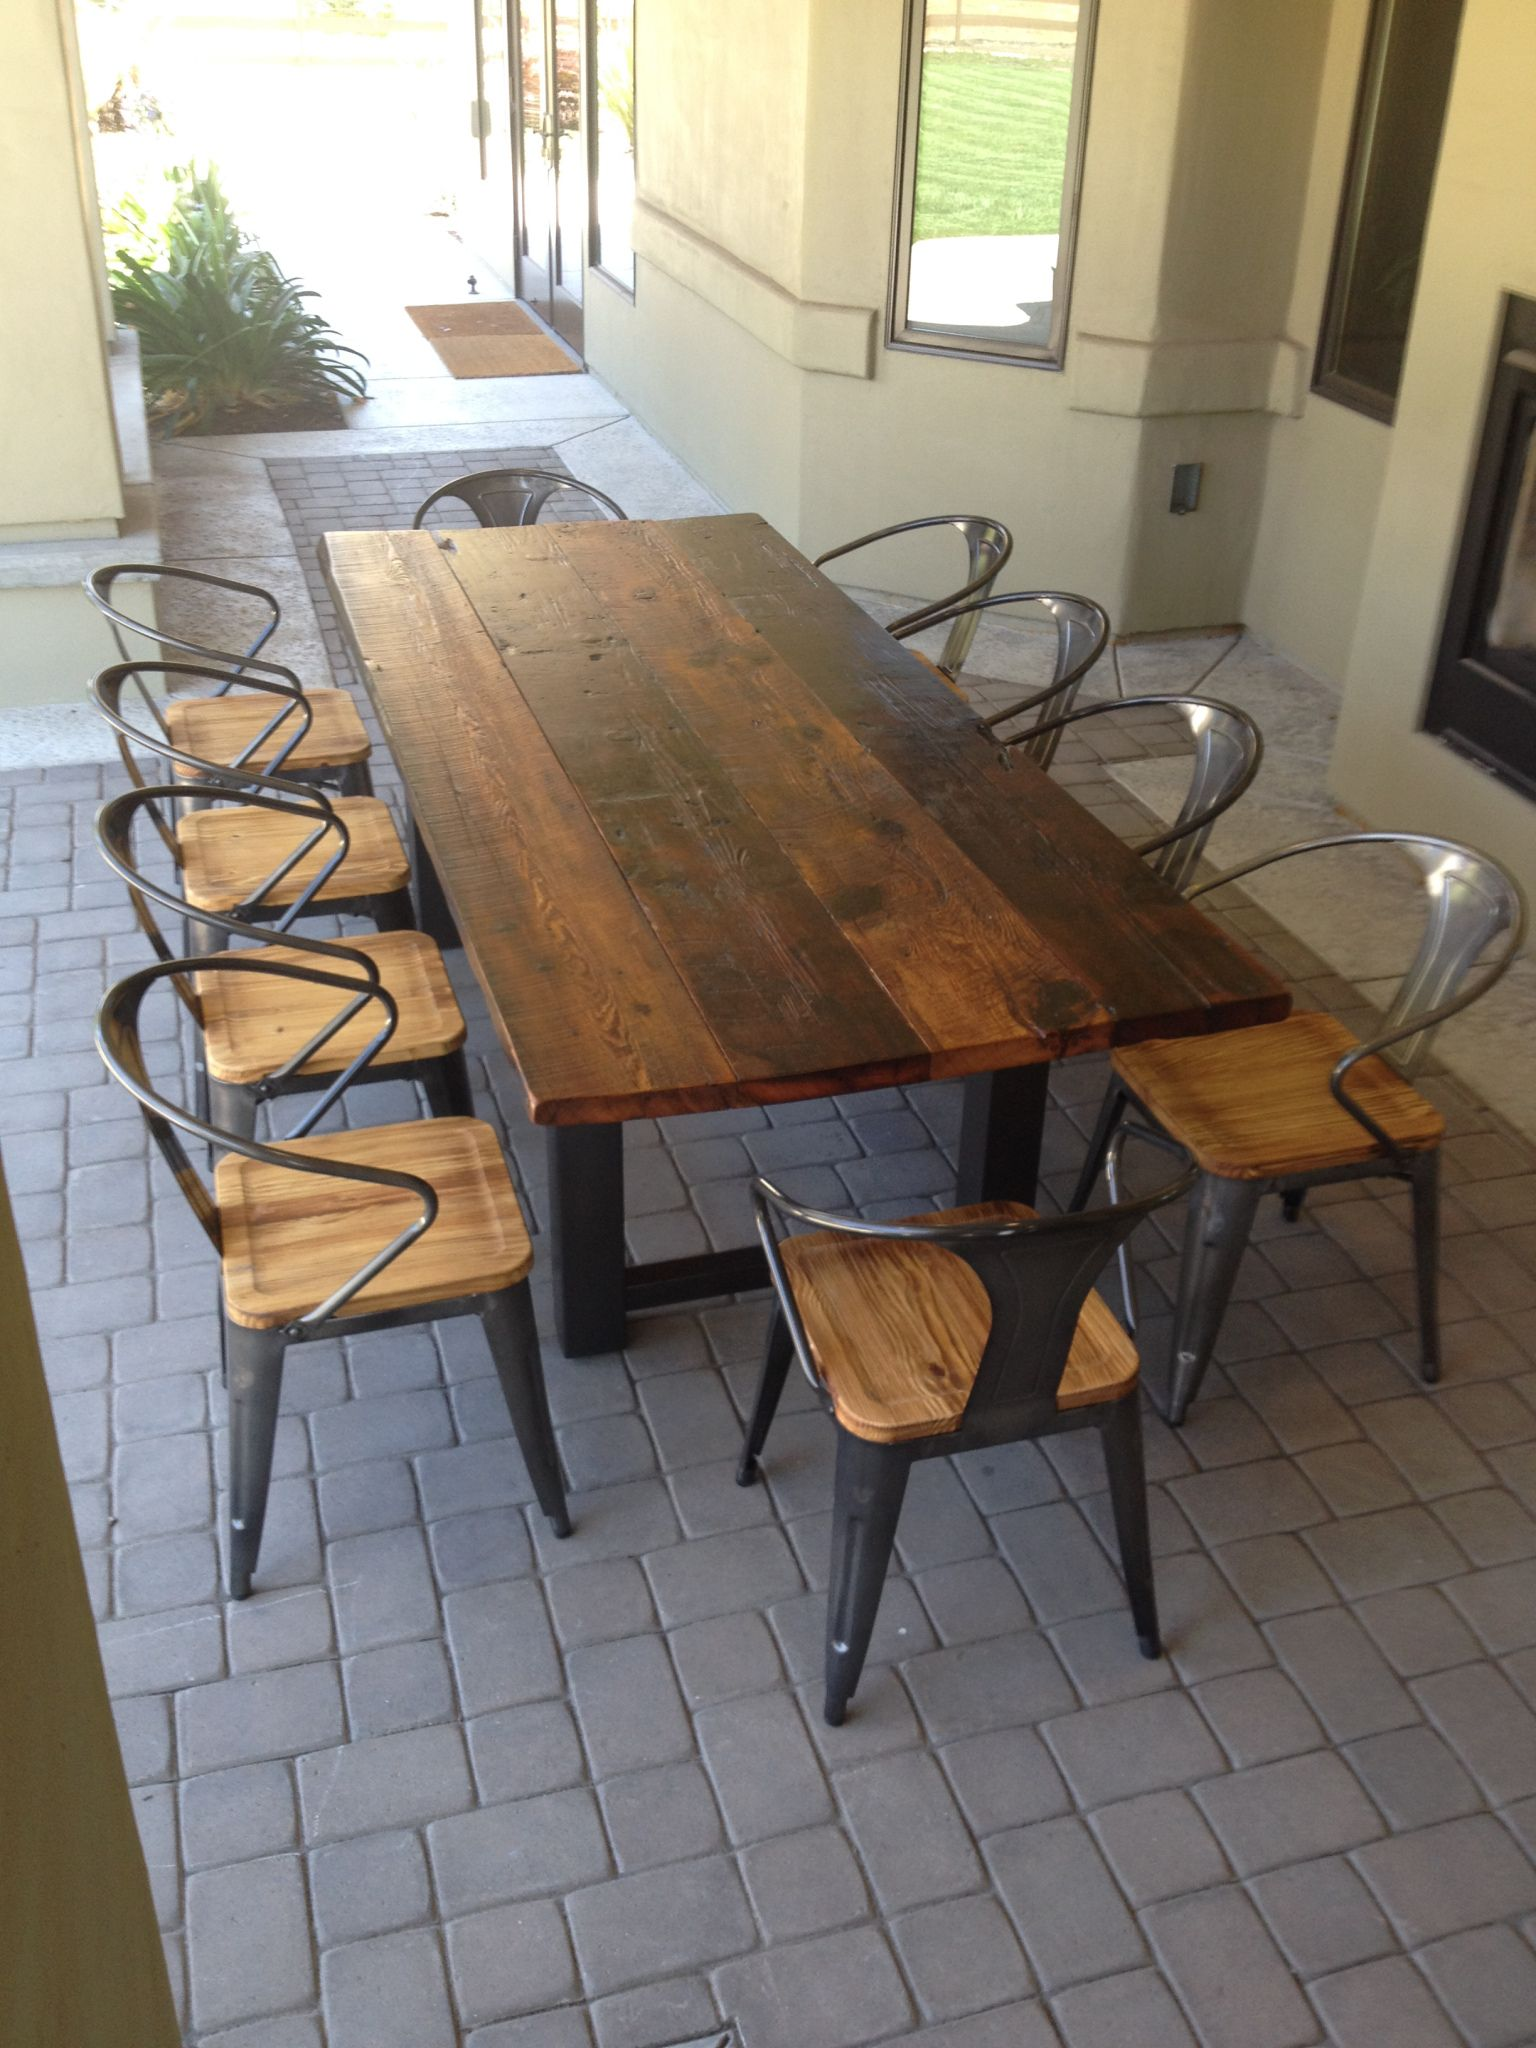 Reclaimed Wood And Steel Outdoor Dining Table 1 Chairs